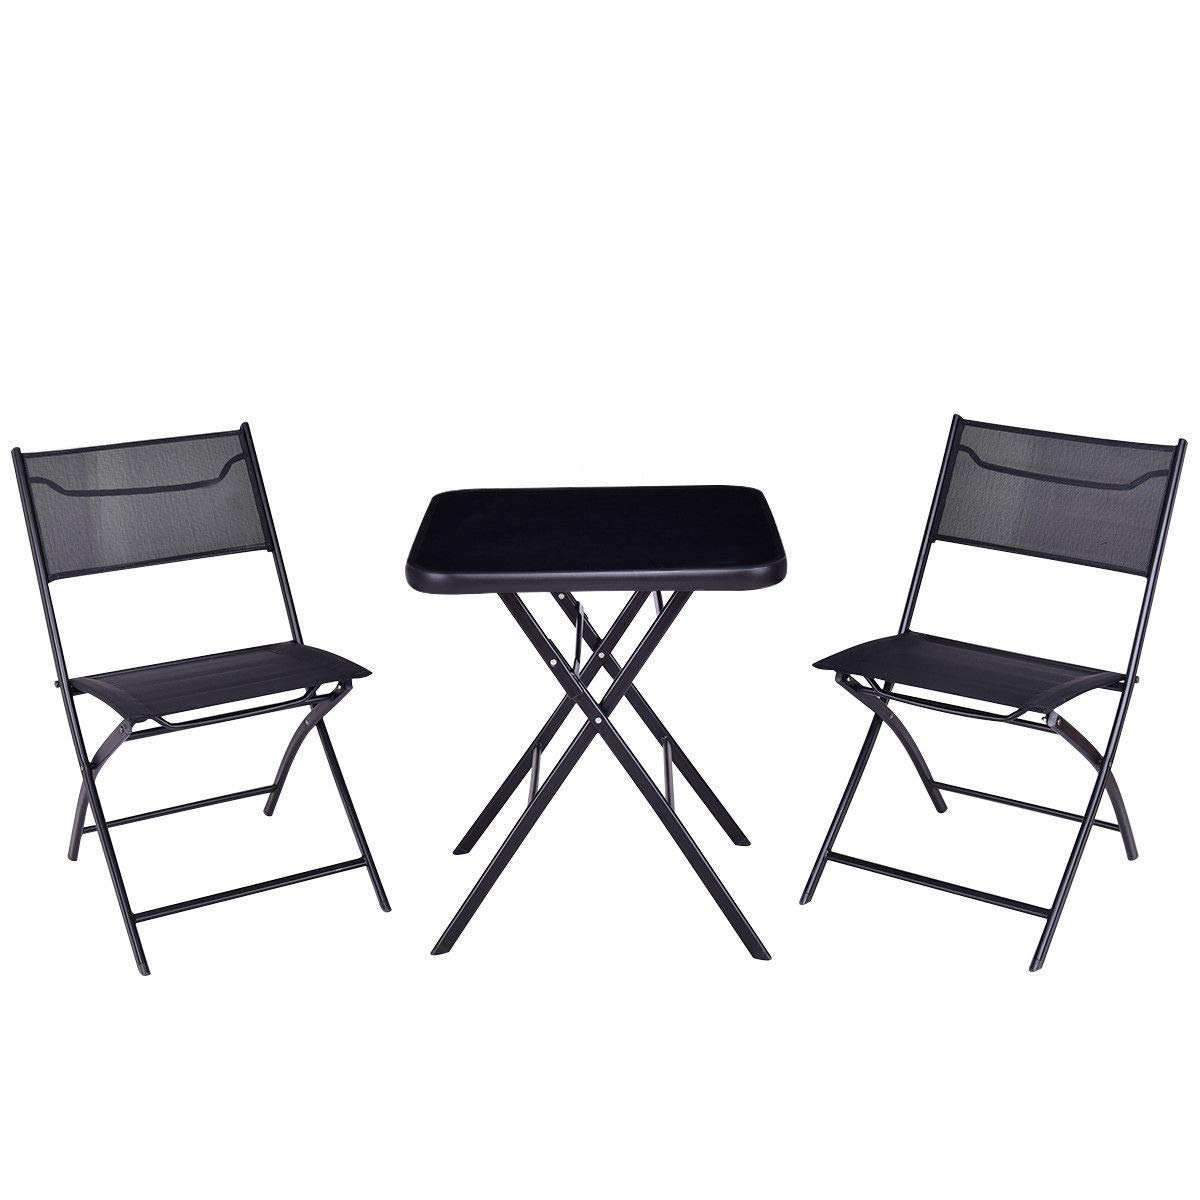 GHP Set of 3 Black Steel Textile Fiber & Tempered Glass Top Folding Table w 2-Pcs Chairs by Globe House Products (Image #2)